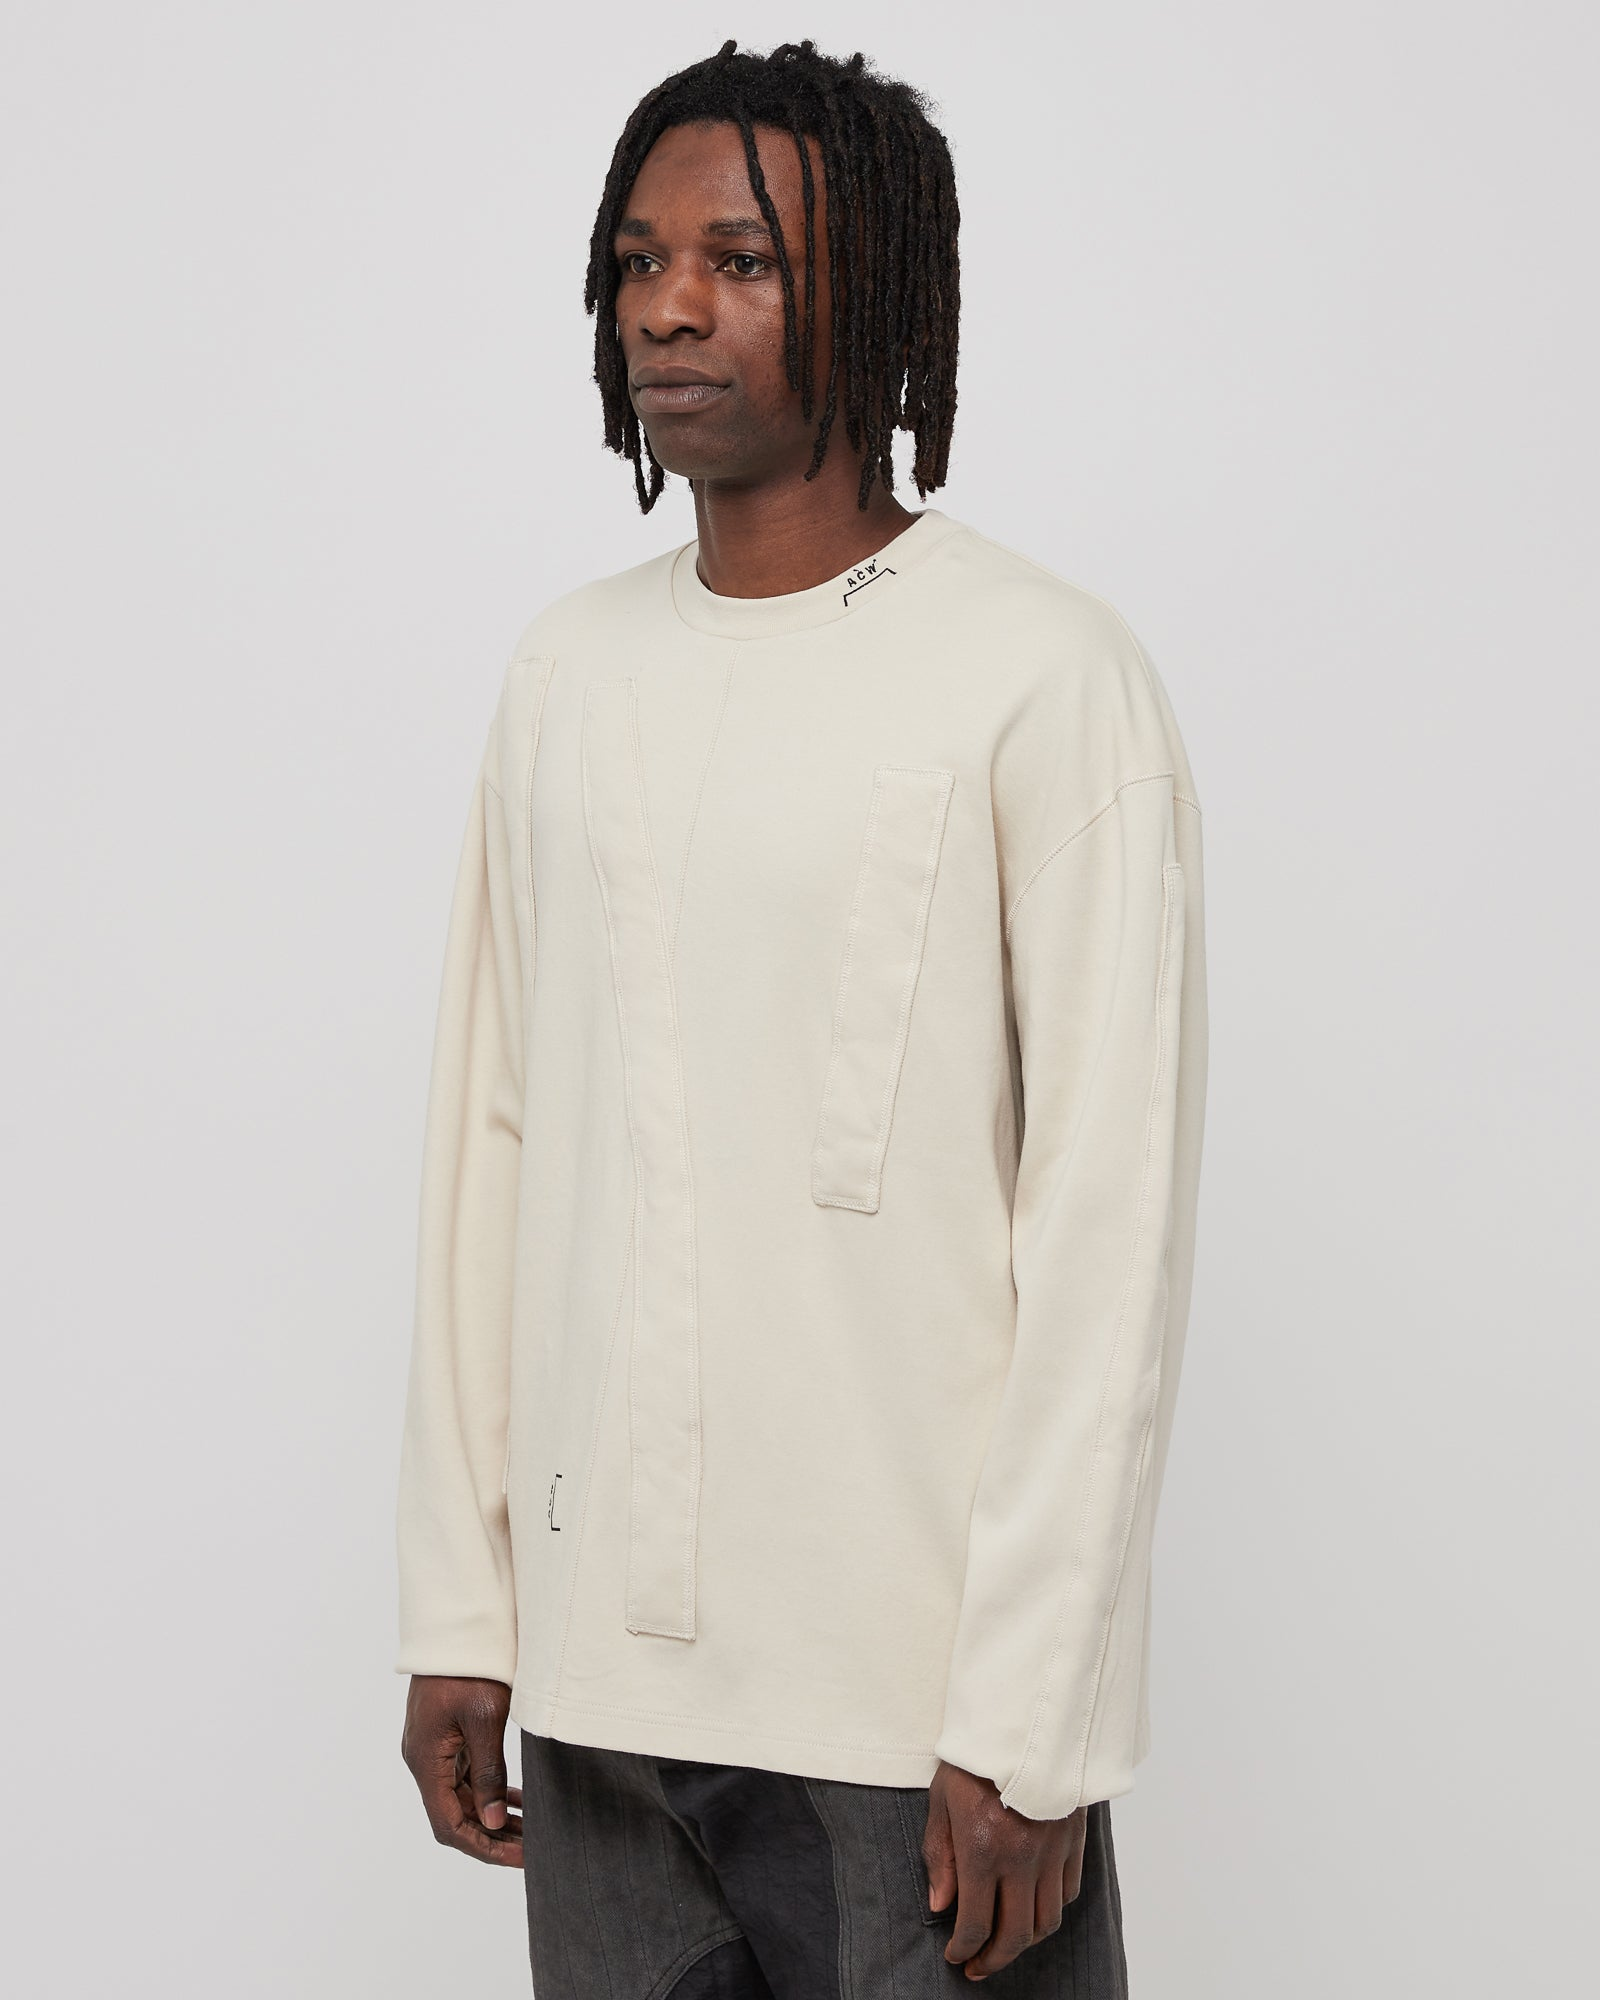 L/S 3D Tunnel Shirt in Almond Milk